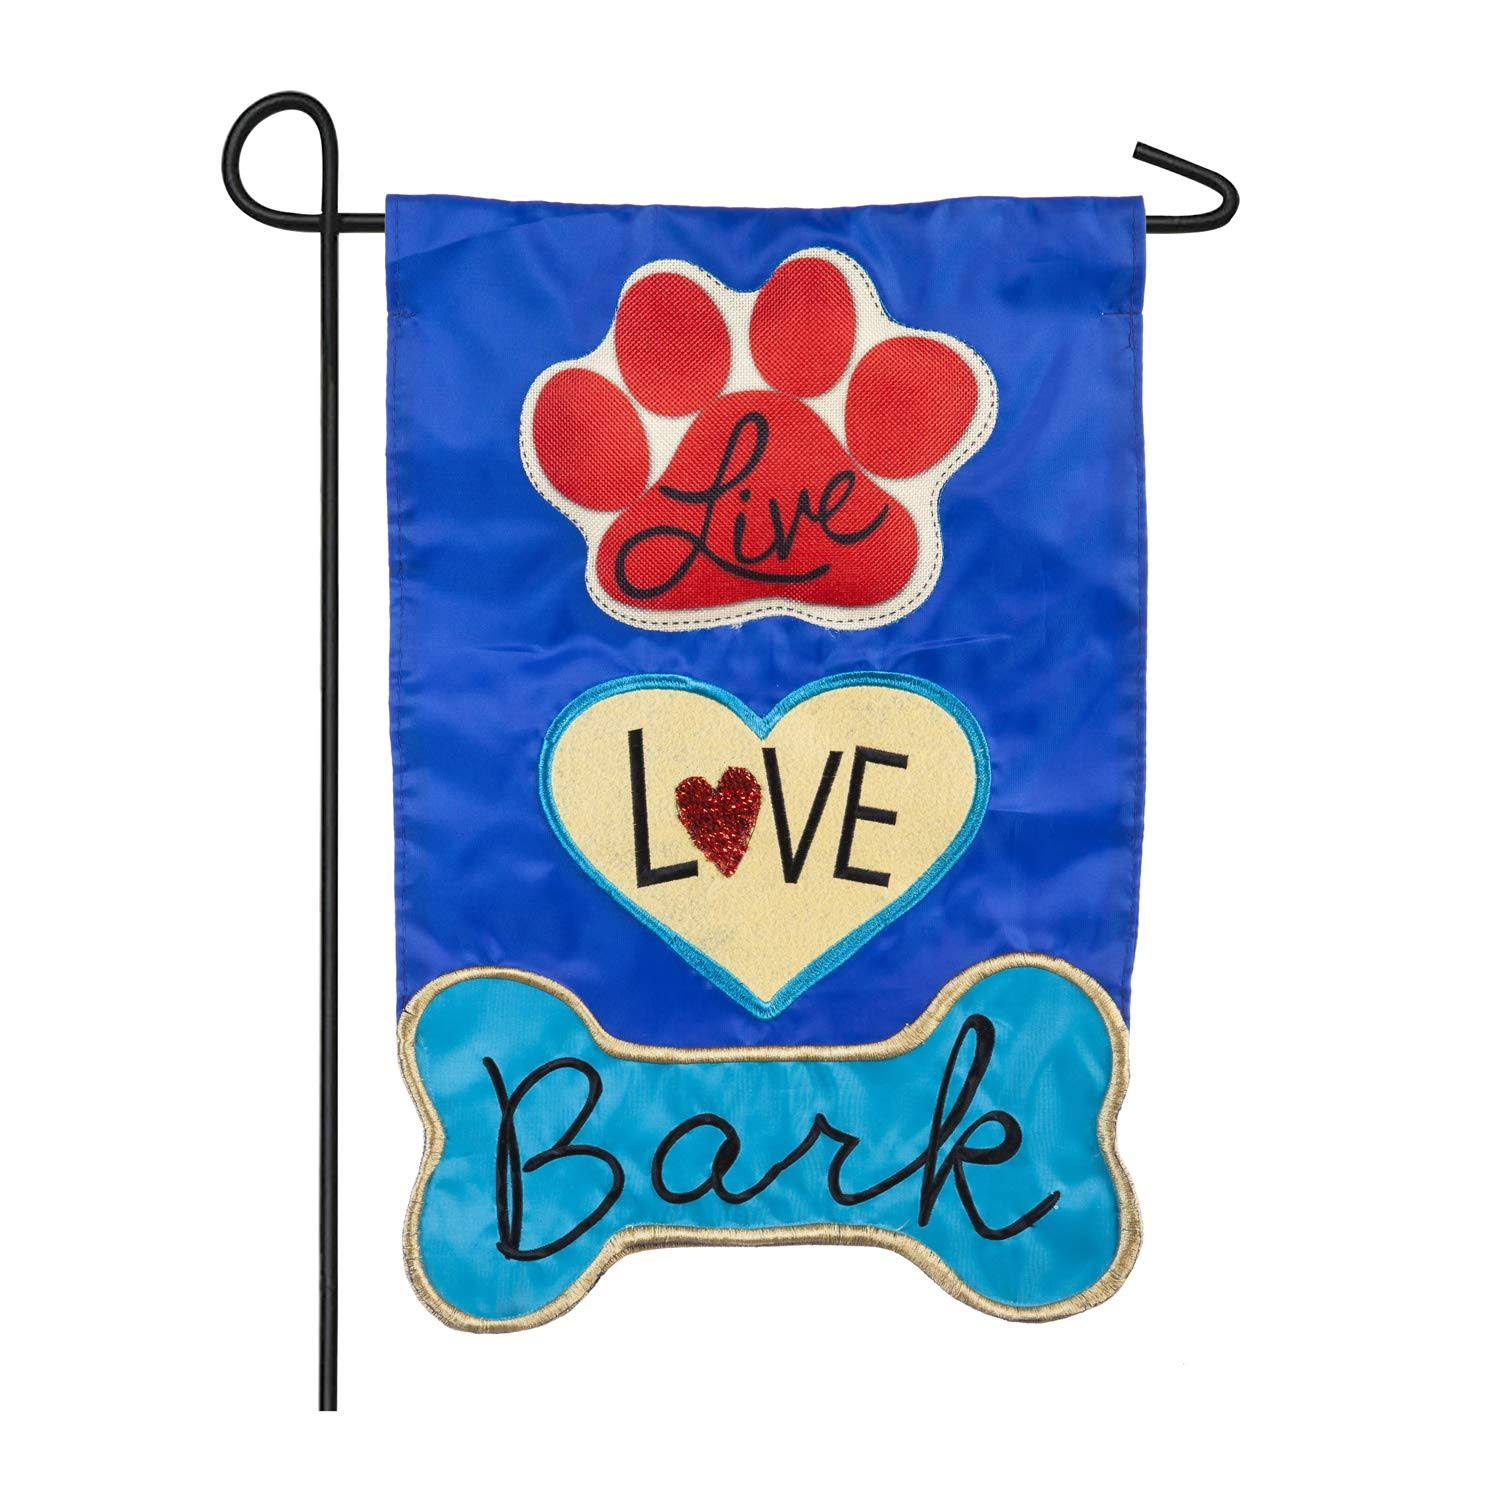 Evergreen Applique Garden Flag - Live Love Bark